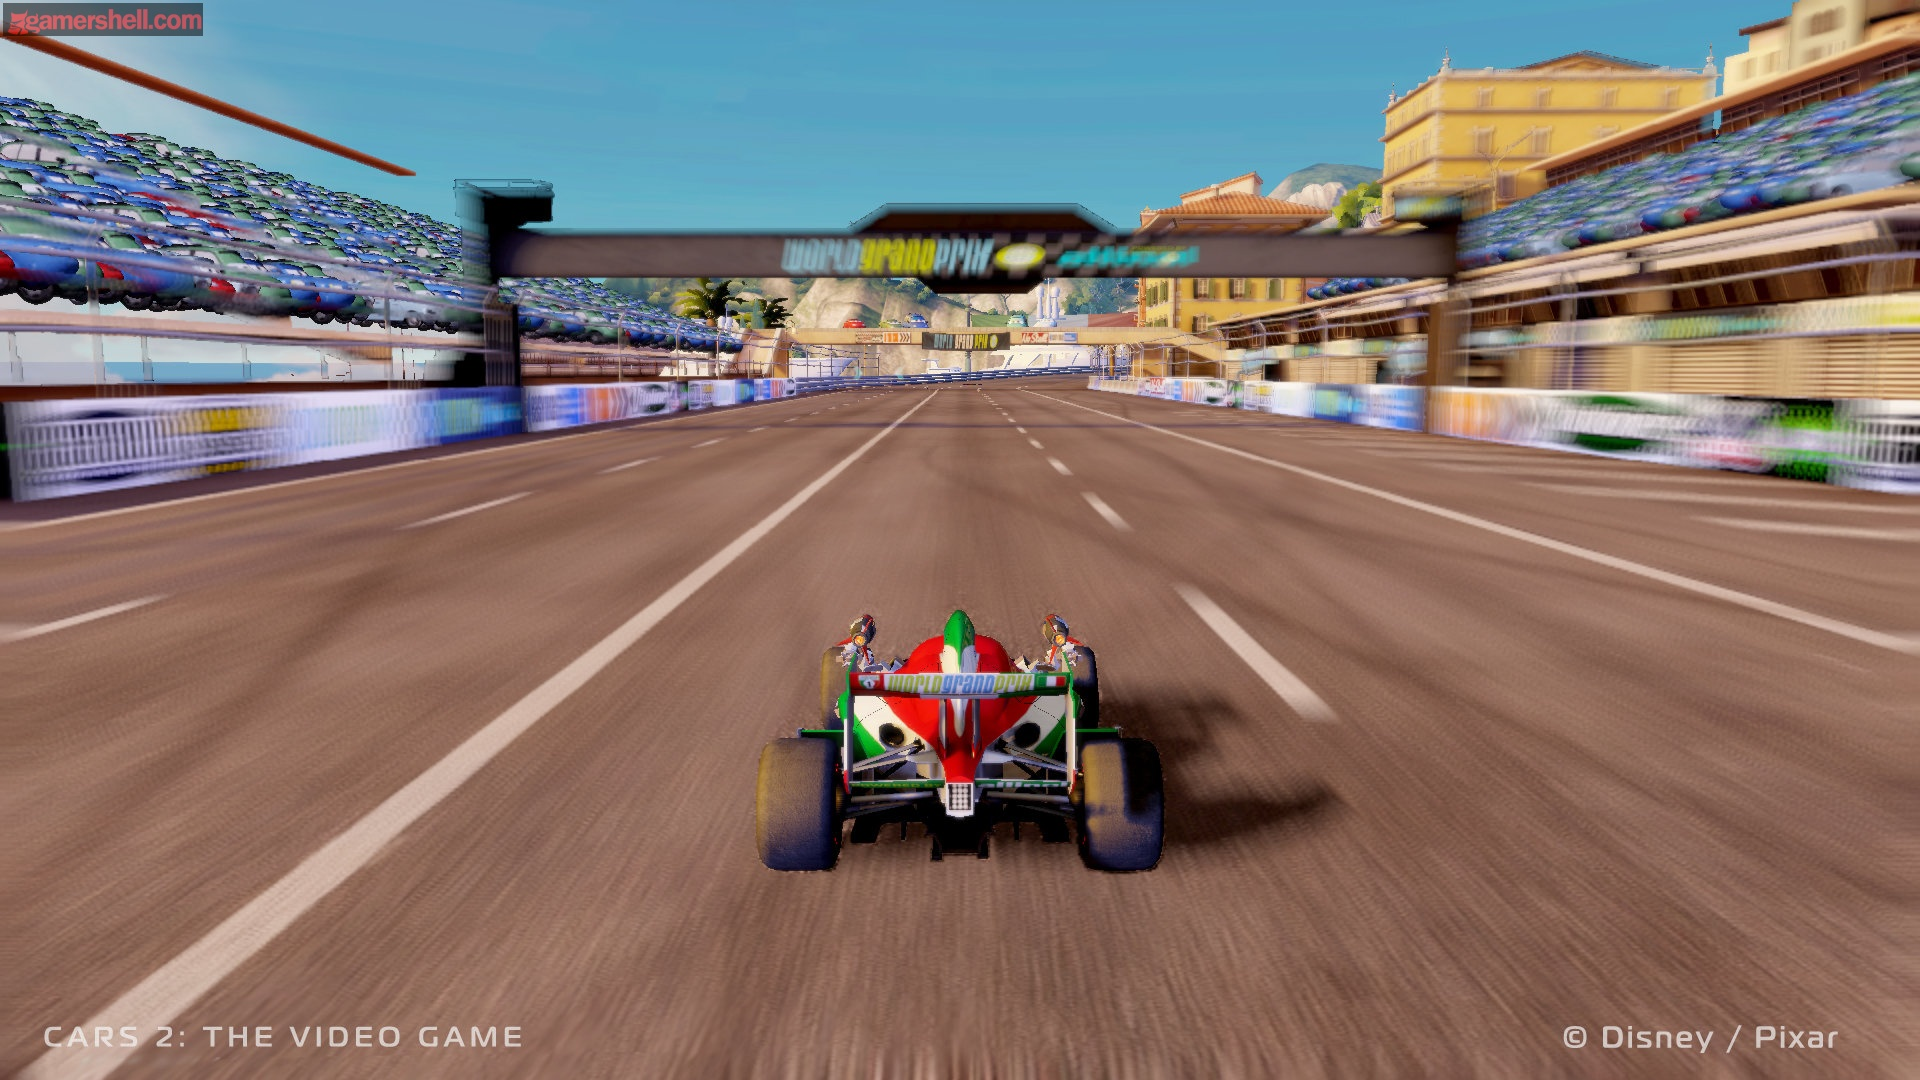 Hands-on With Cars 2: The Video Game